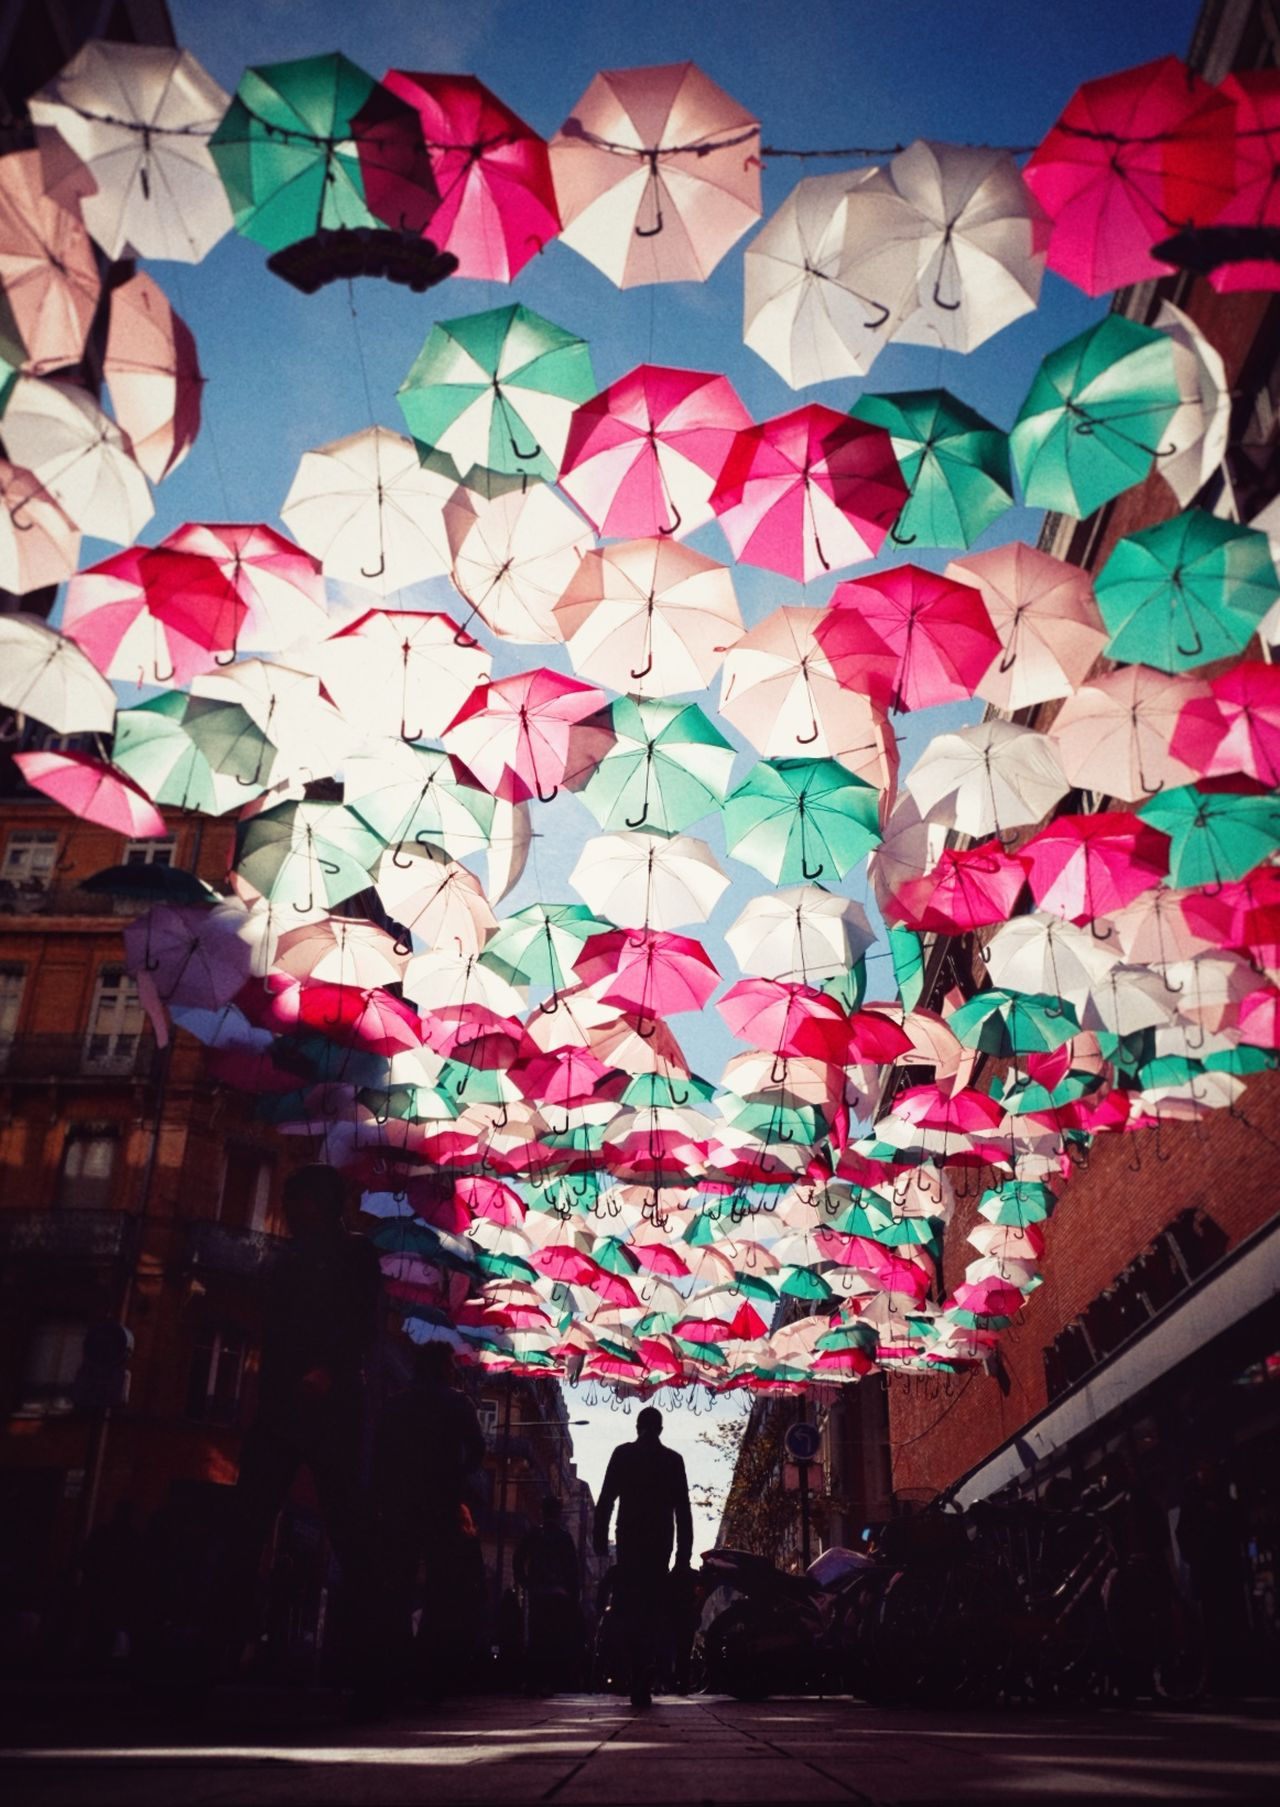 Umbrella Sky in Toulouse Art Traveling Travel Photography Love Without Boundaries